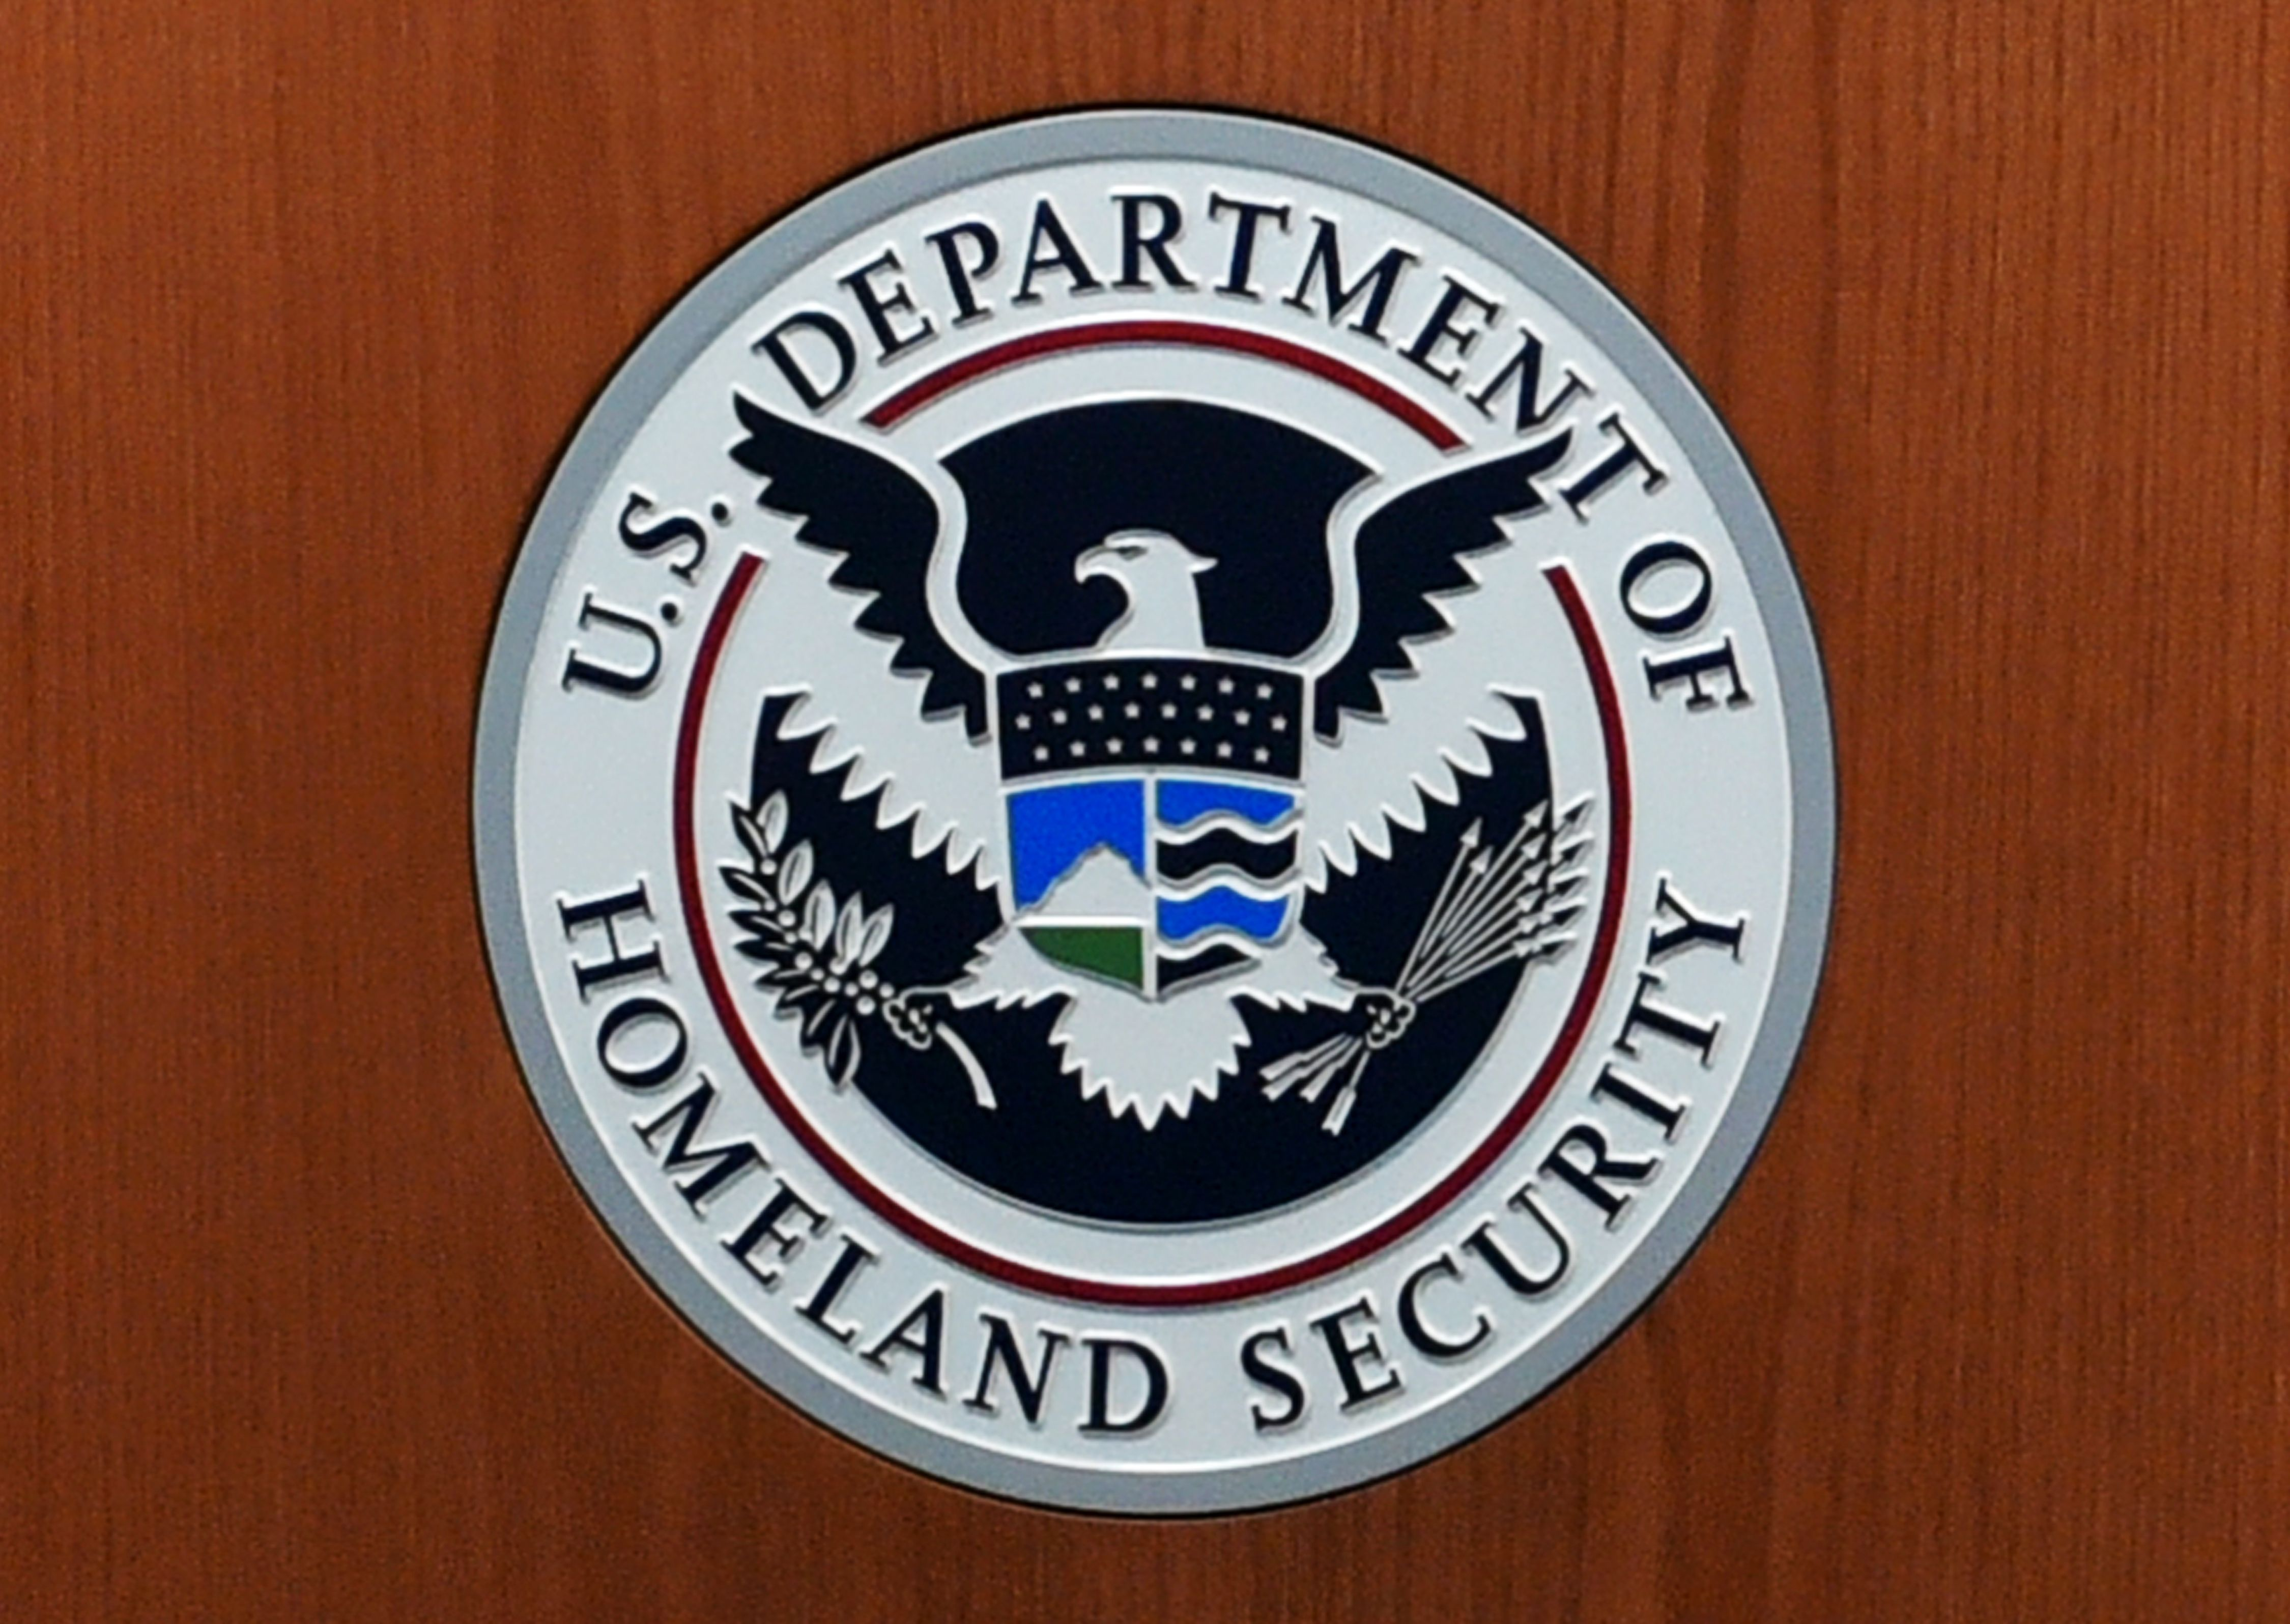 The seal of the U.S. Department of Homeland Security in the U.S. Customs and Border Protection Press Room at the Reagan Building in Washington, D.C., on March 6, 2017.